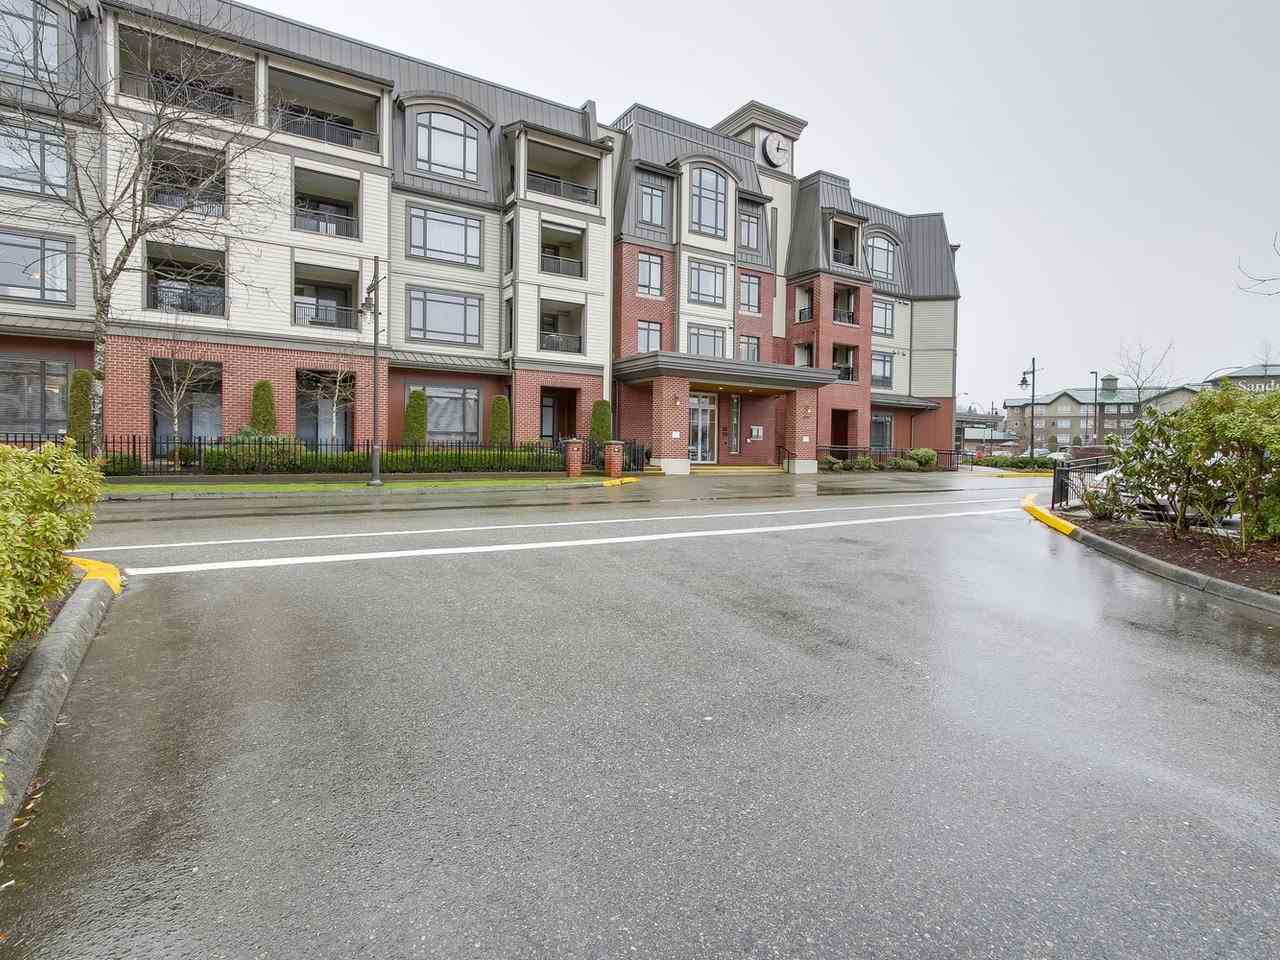 Photo 2: Photos: 226 8880 202 Street in Langley: Walnut Grove Condo for sale : MLS® # R2234850